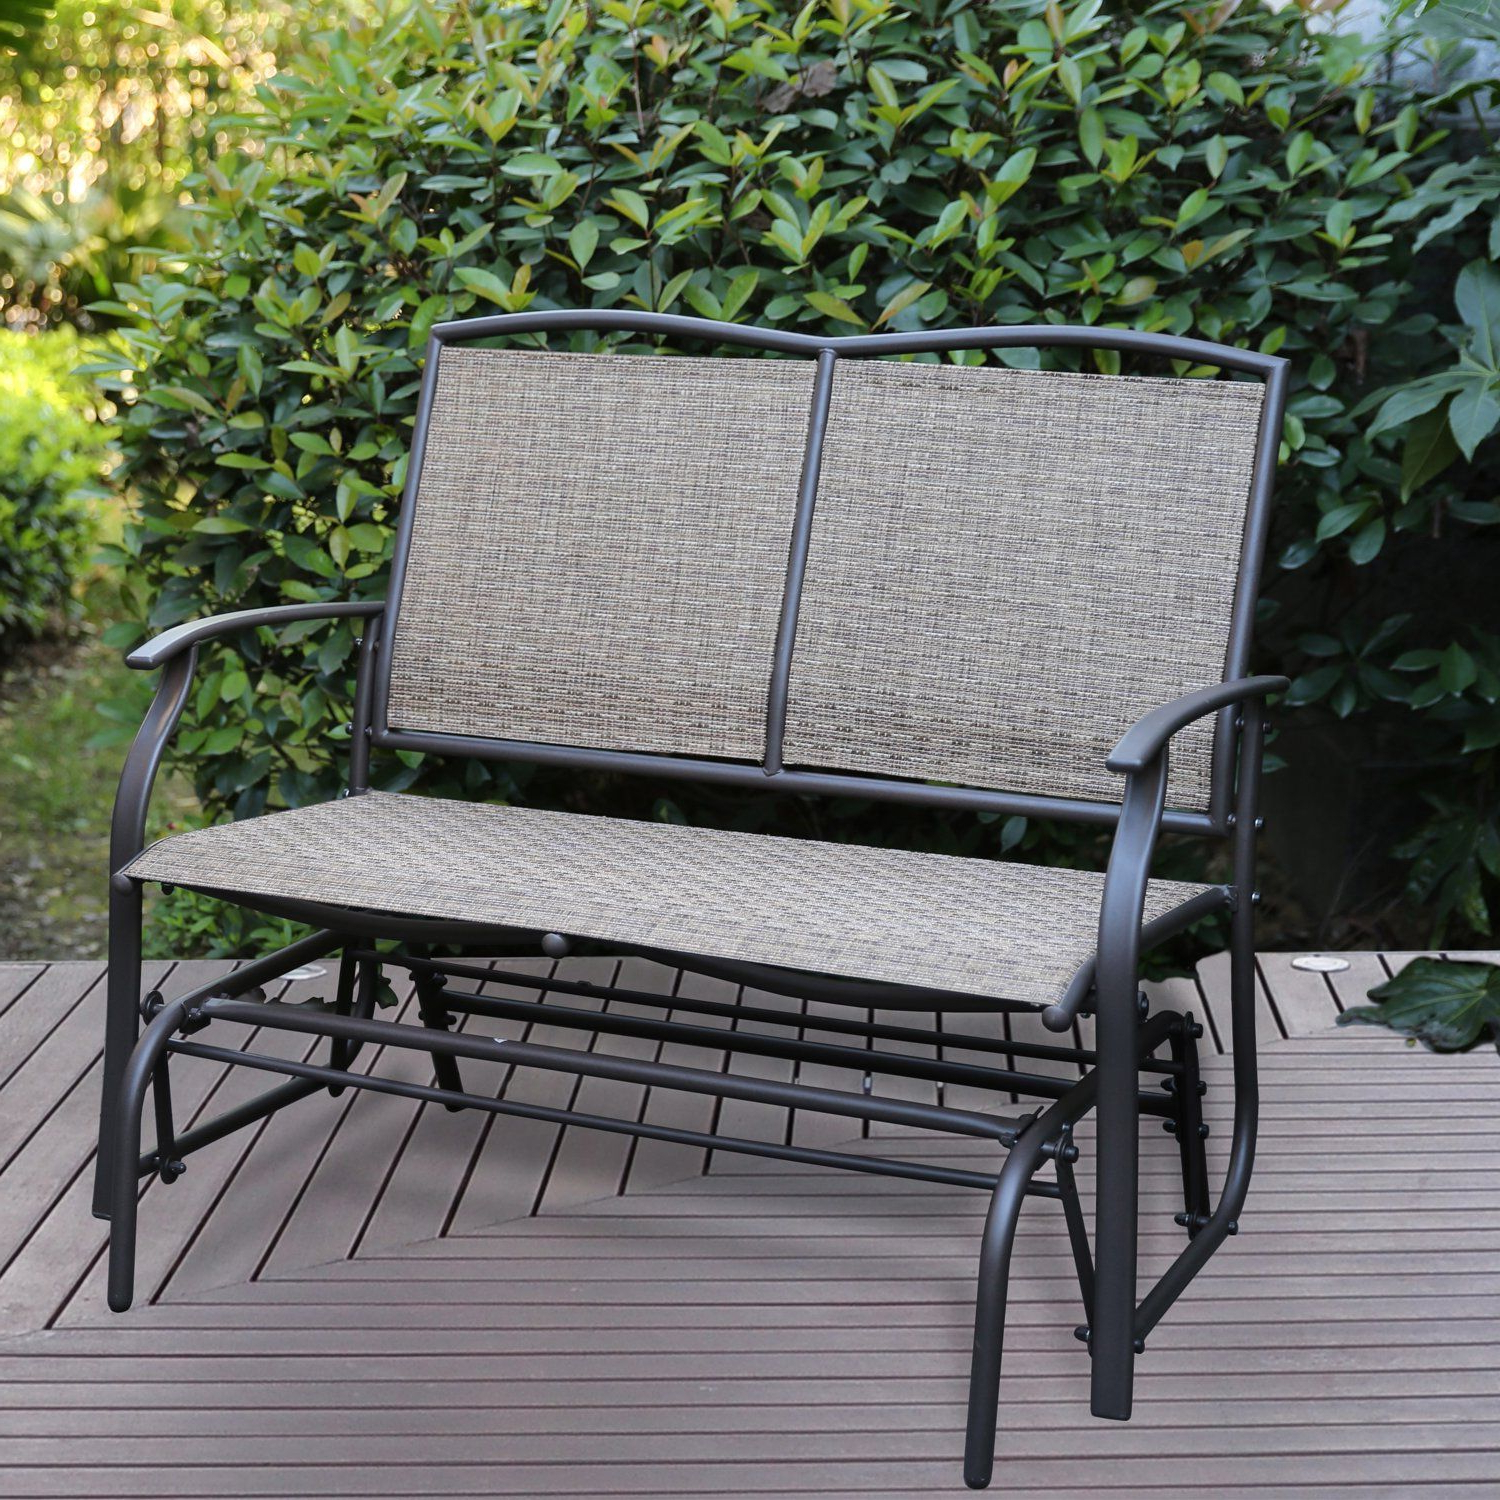 Patio Tree Patio Swing Glider Bench For 2 Person All Intended For Fashionable 2 Person Loveseat Chair Patio Porch Swings With Rocker (Gallery 25 of 25)